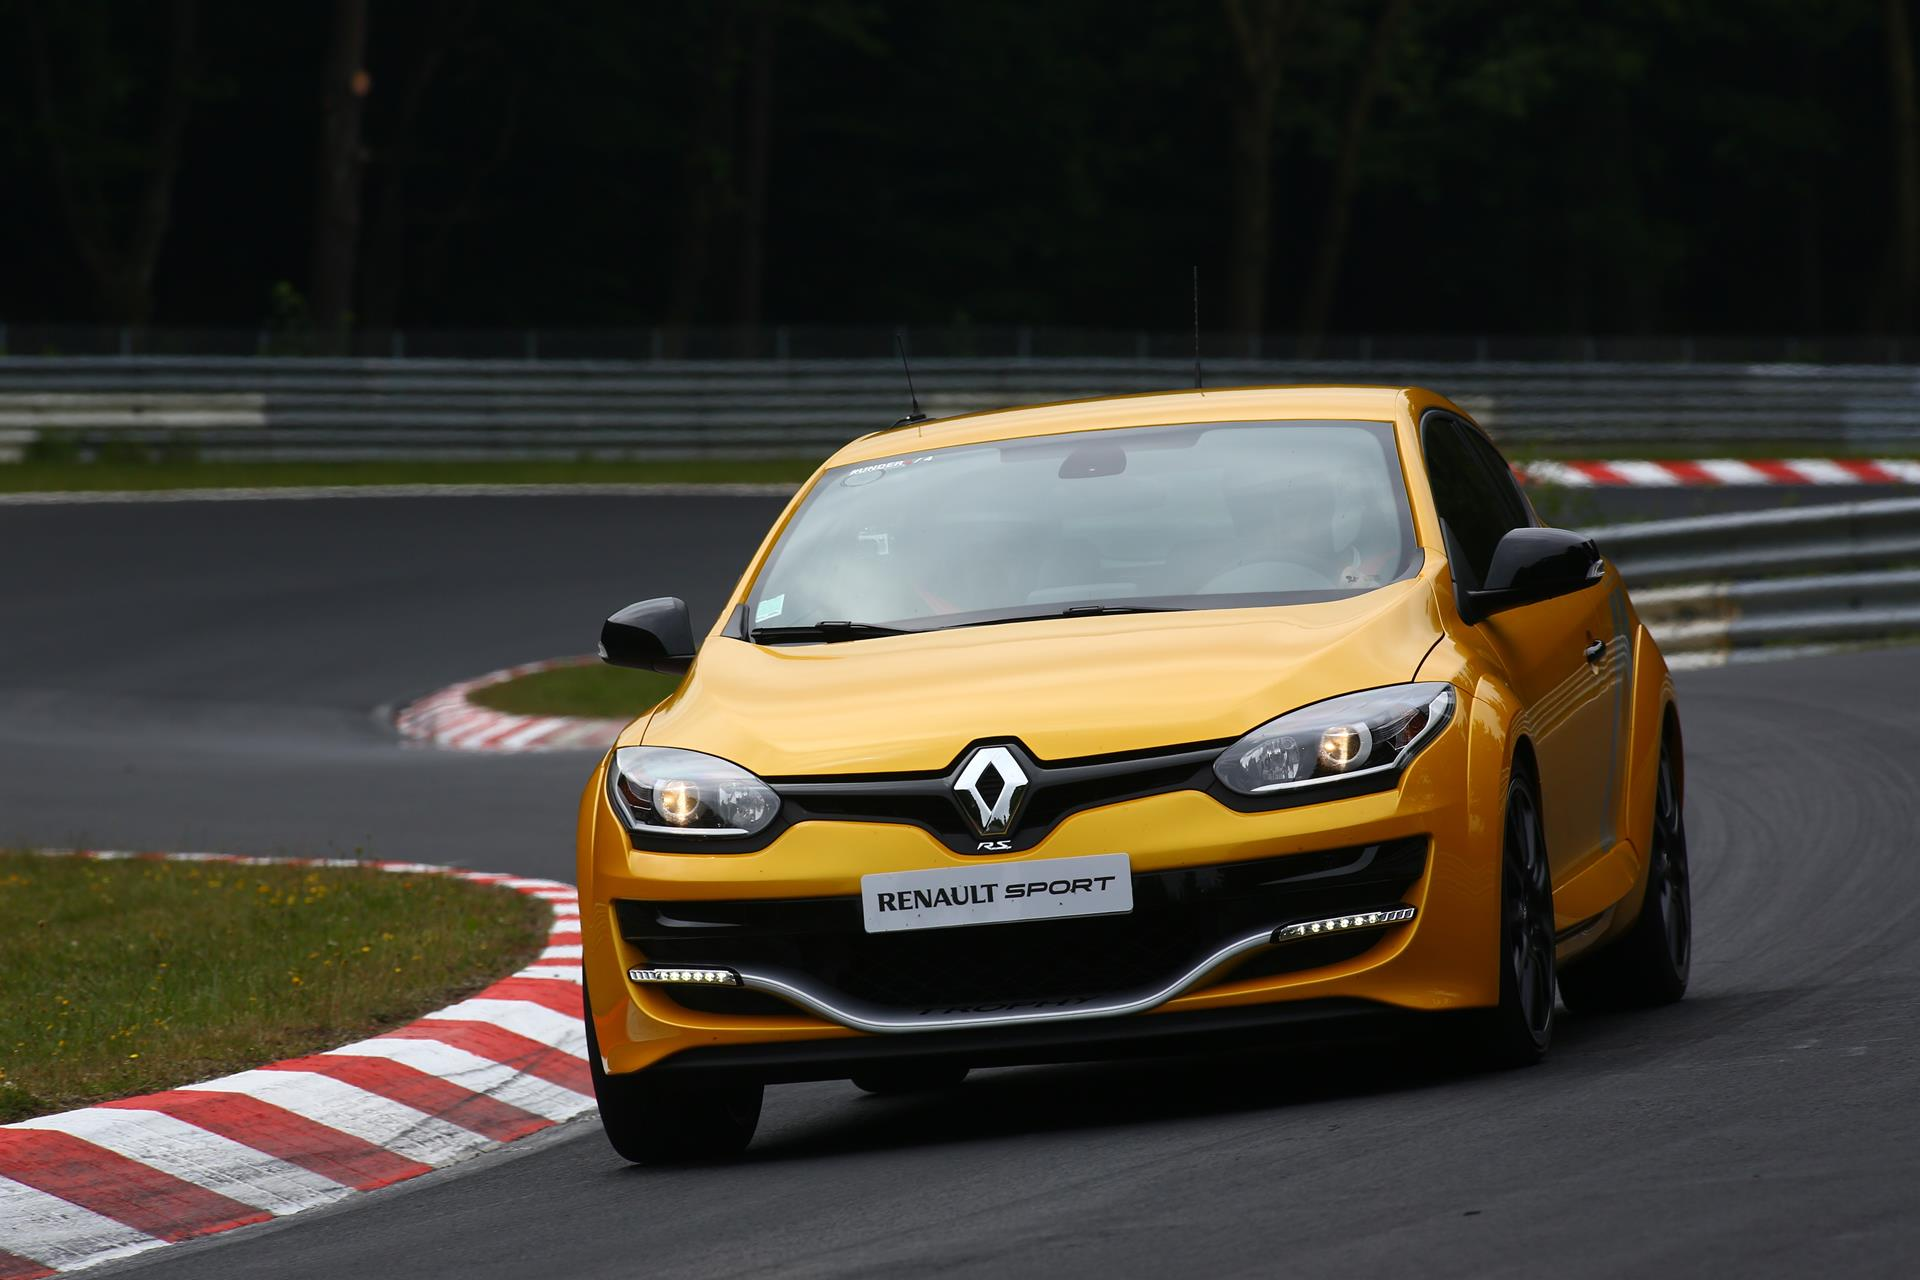 1920x1280 - Renault RS Wallpapers 33